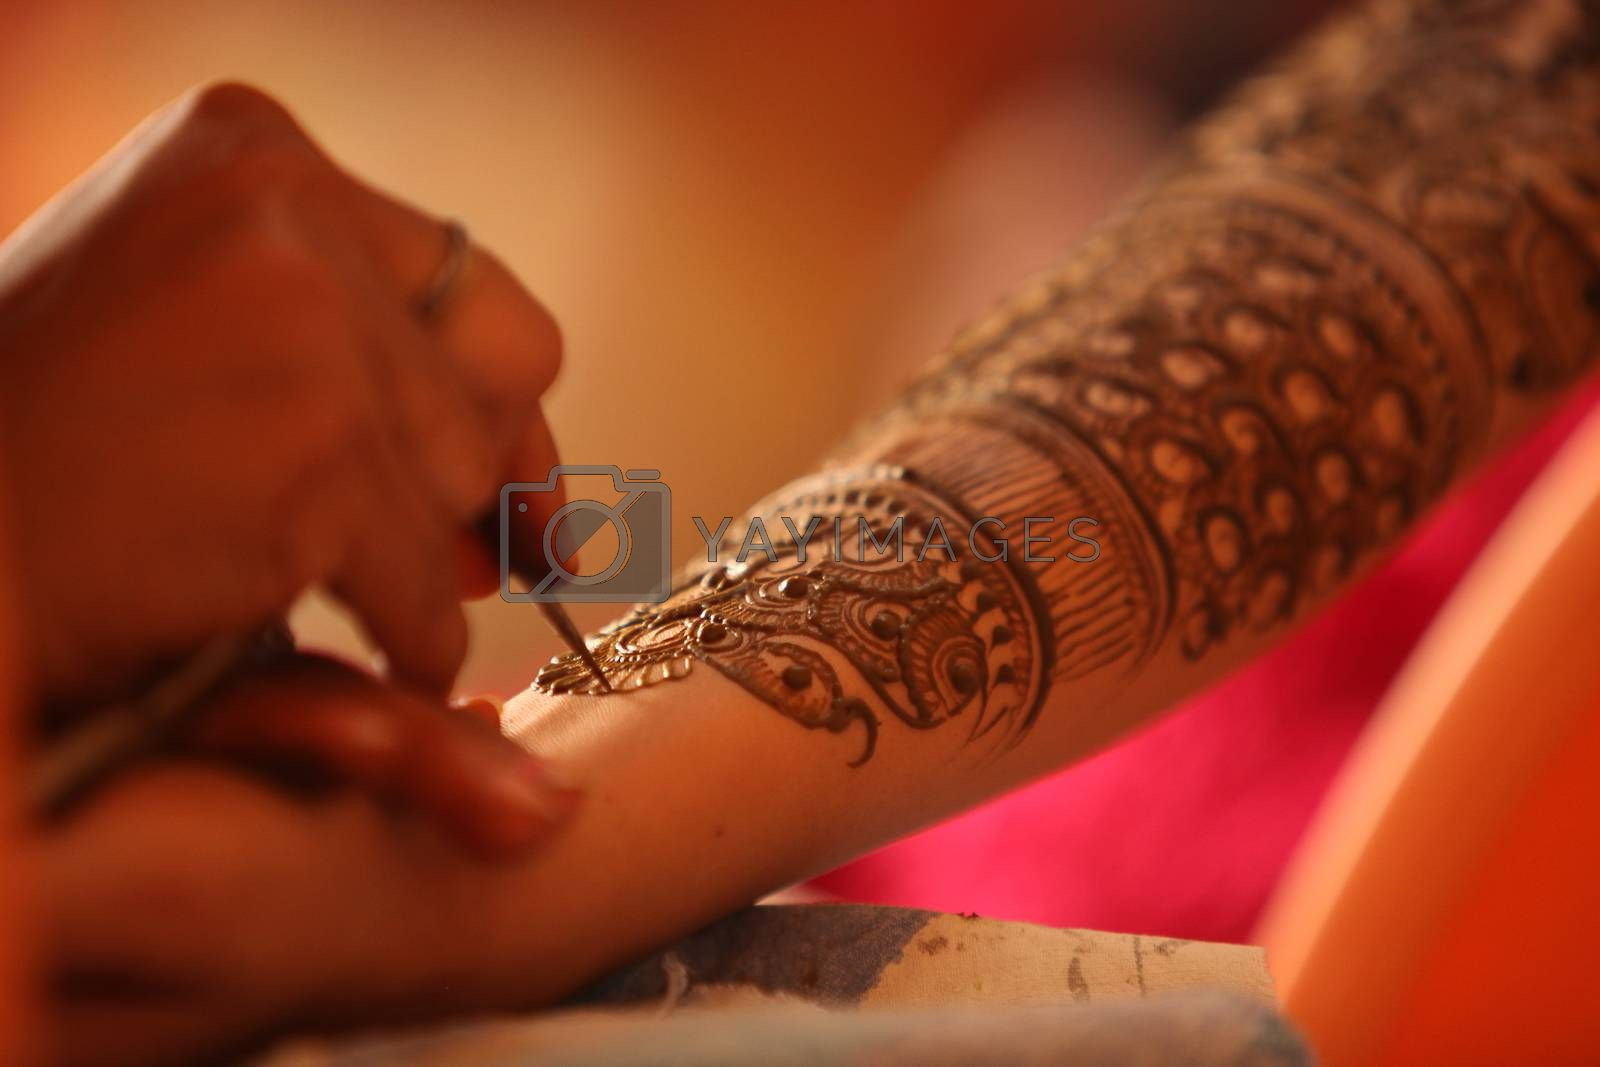 An artist making a beautiful henna or mehendi design on the hand of an Indian wife.